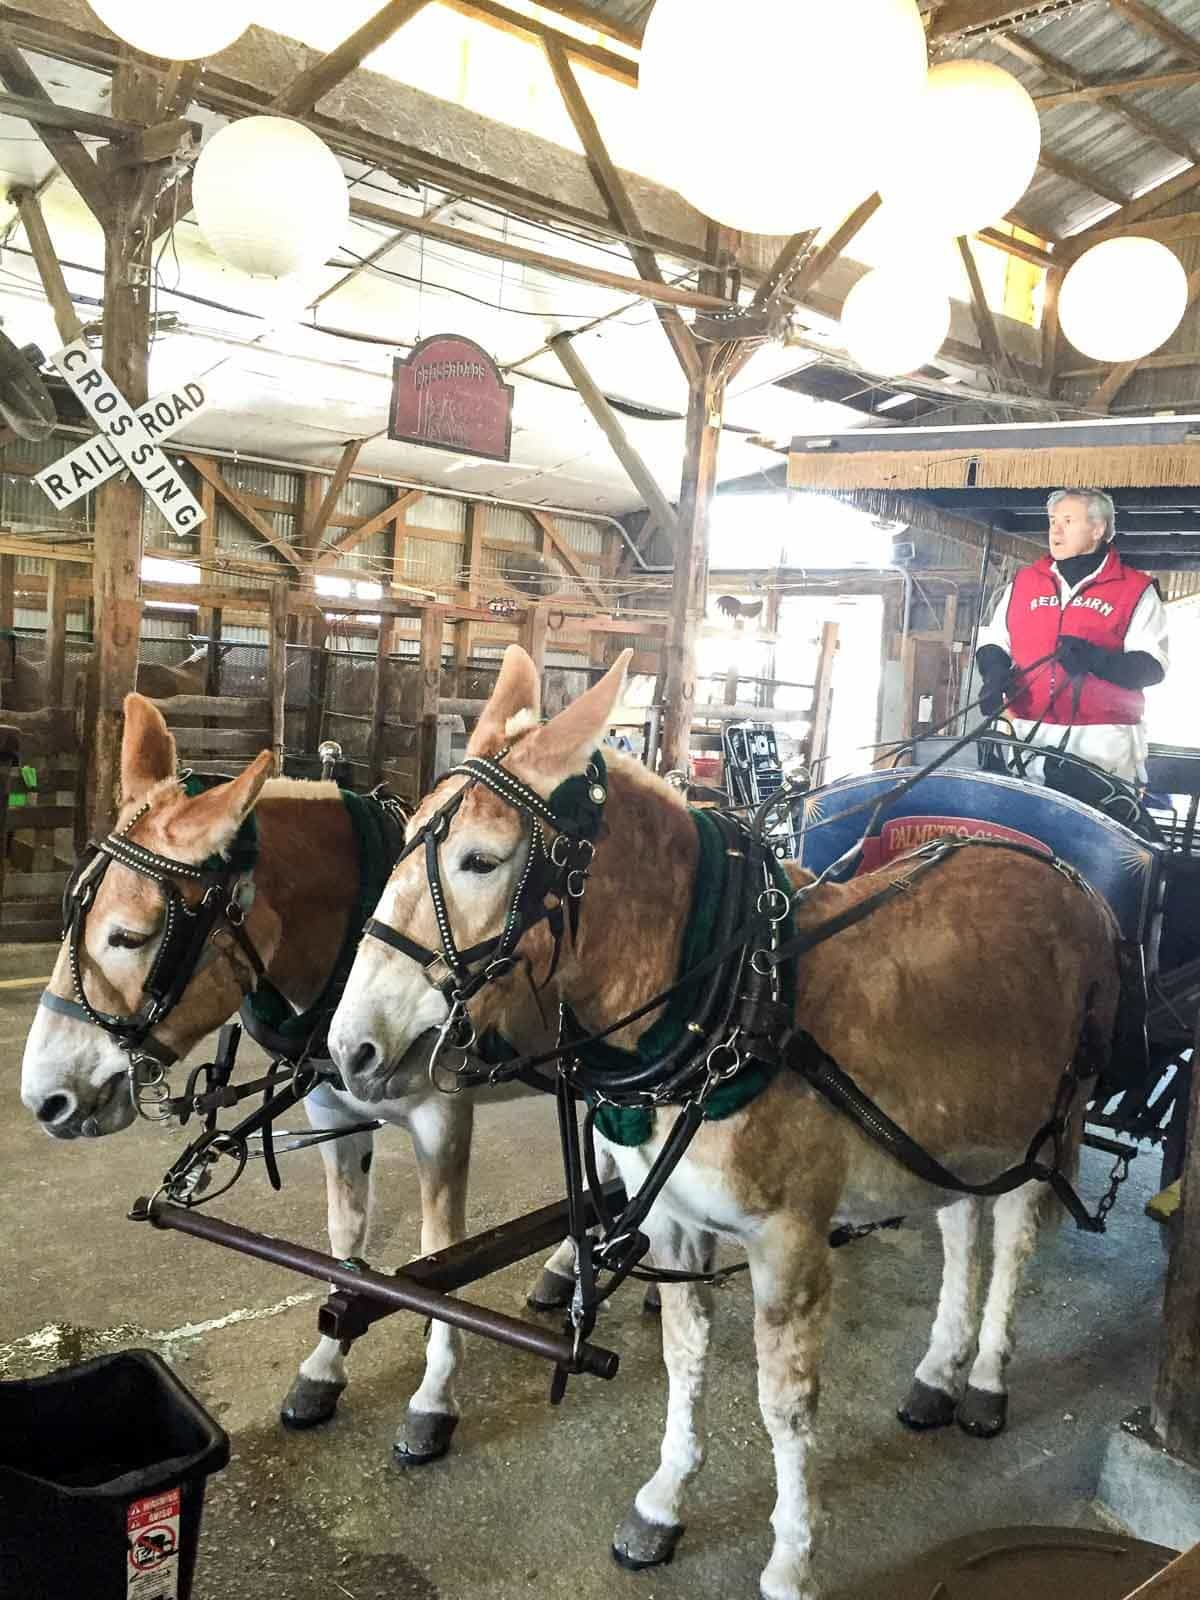 Best things to do in Charleston: Take a carriage tour with Palmetto Carriage Works